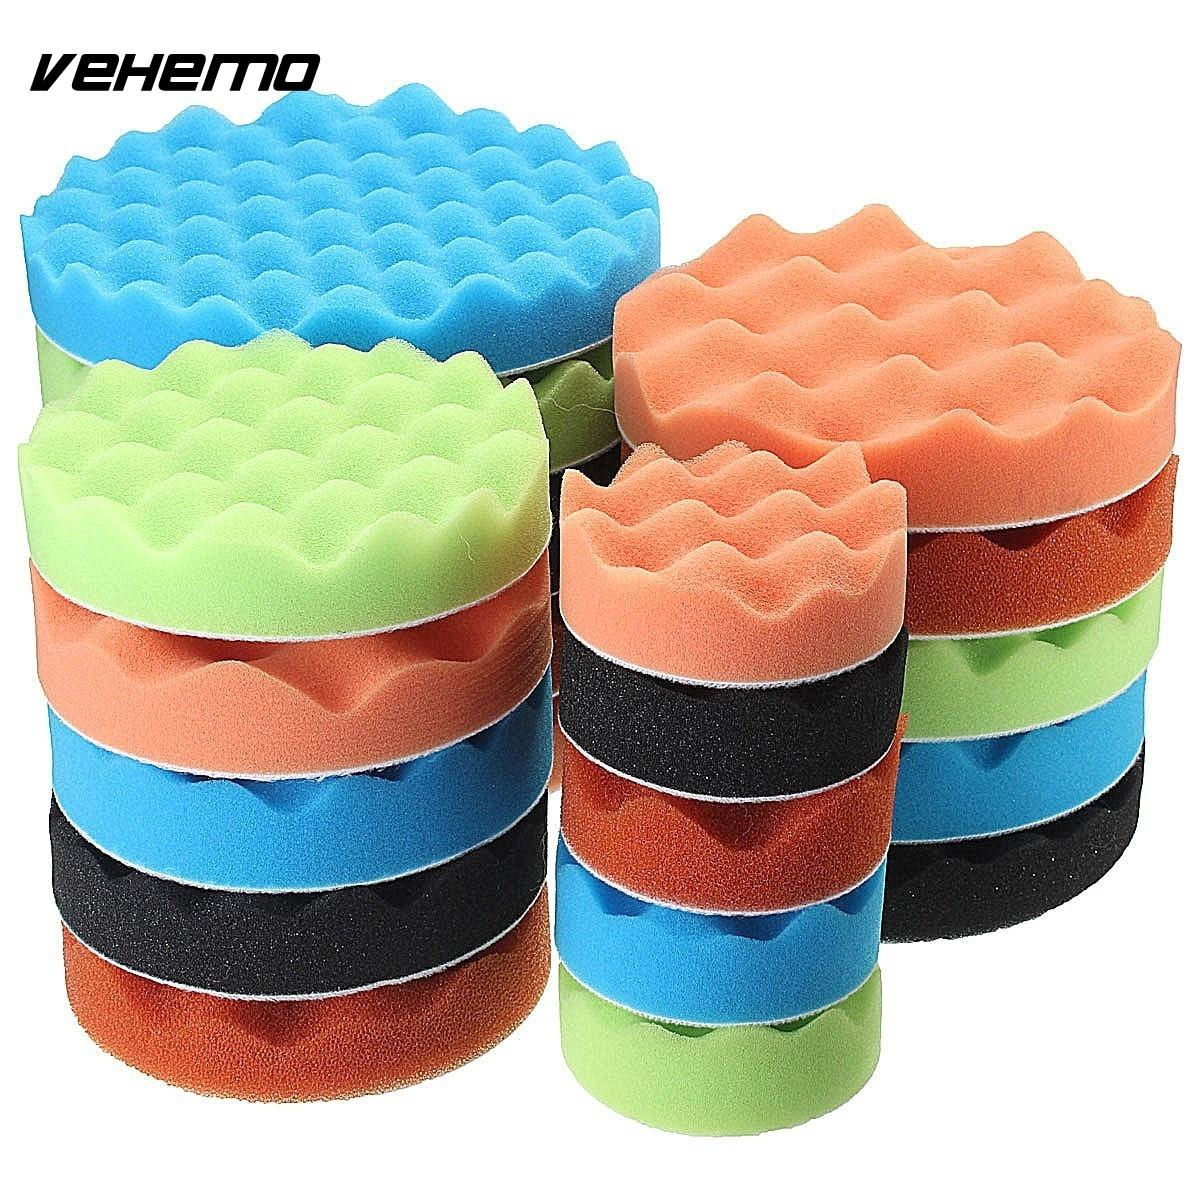 VEHEMO 19 PCS 80mm Car Sponge Buff Polishing Pad Set For Car Polisher With Waxing M10 Drill Adapter Car-Styling Cleaning